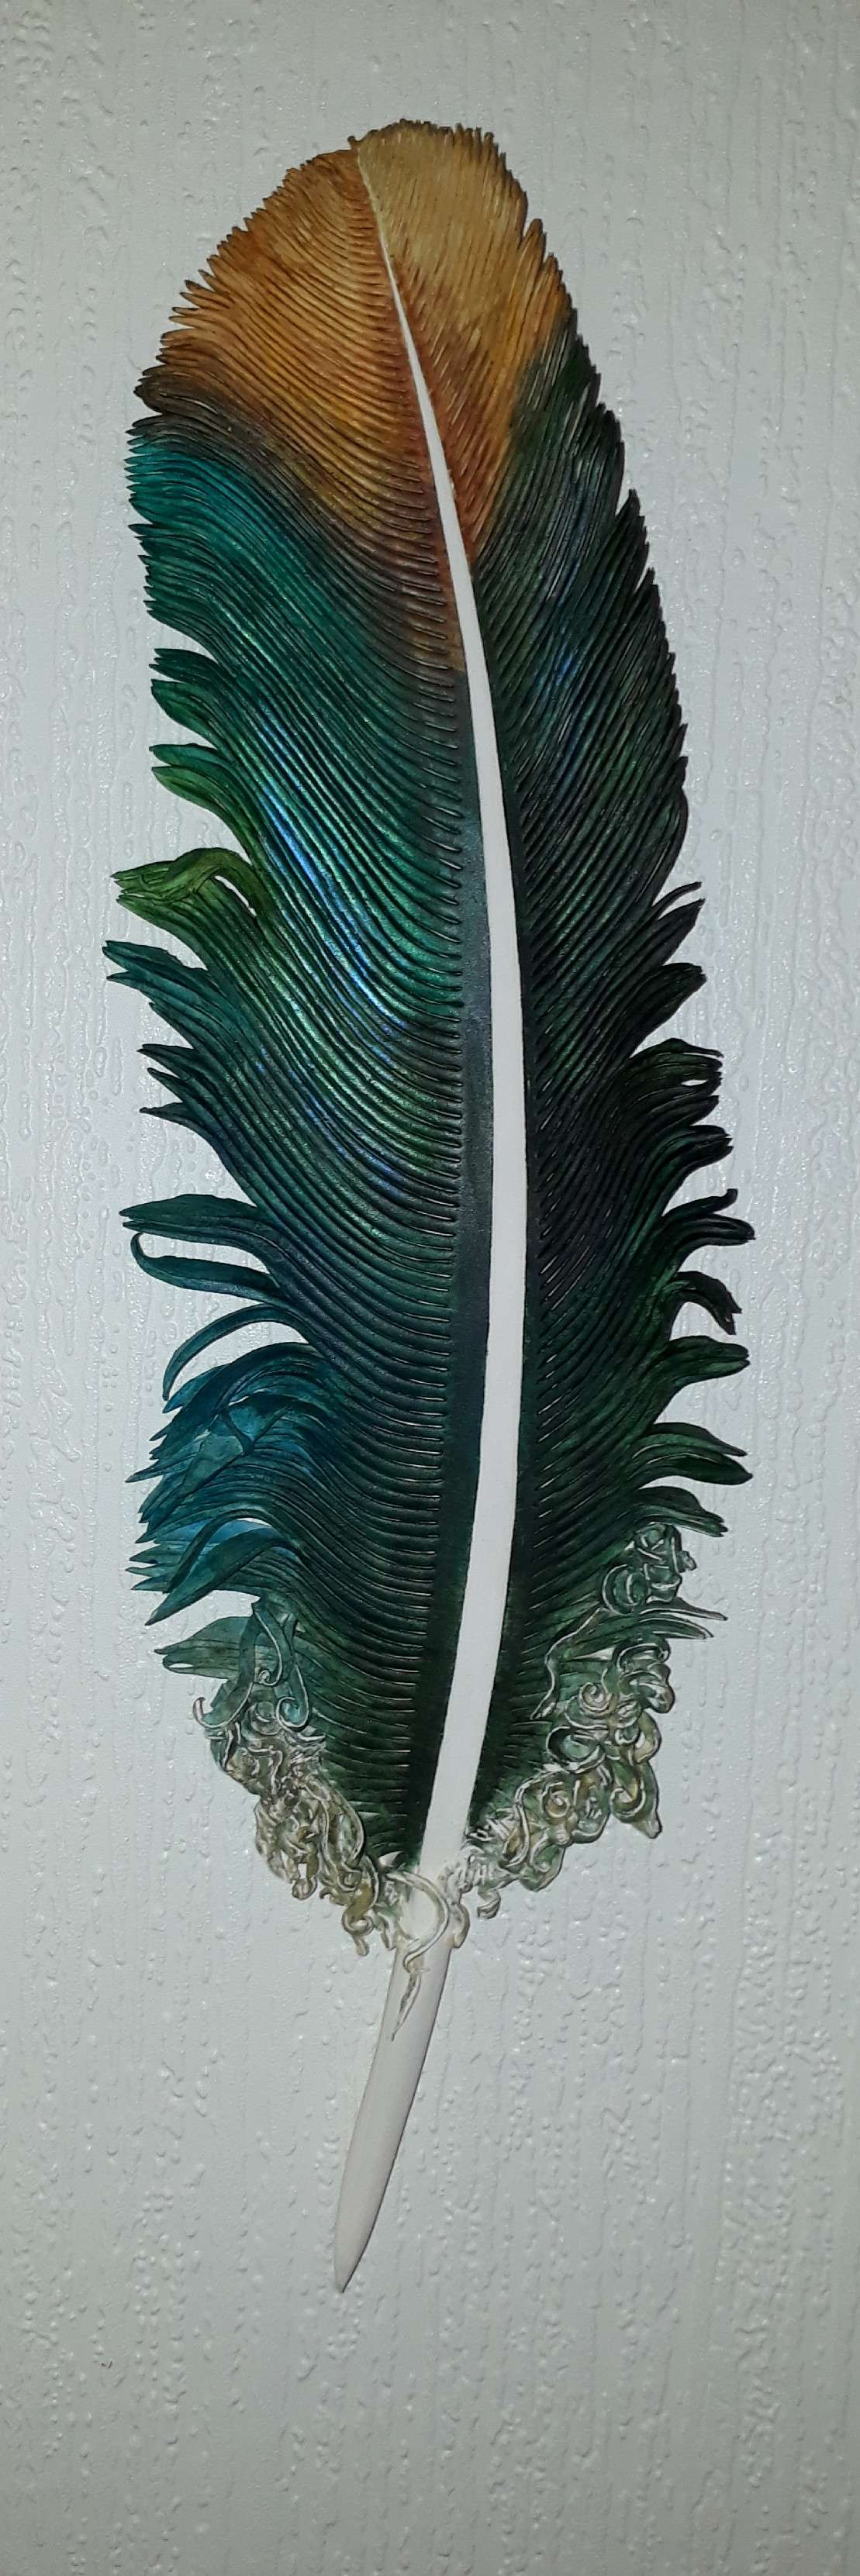 Kingfisher Feather